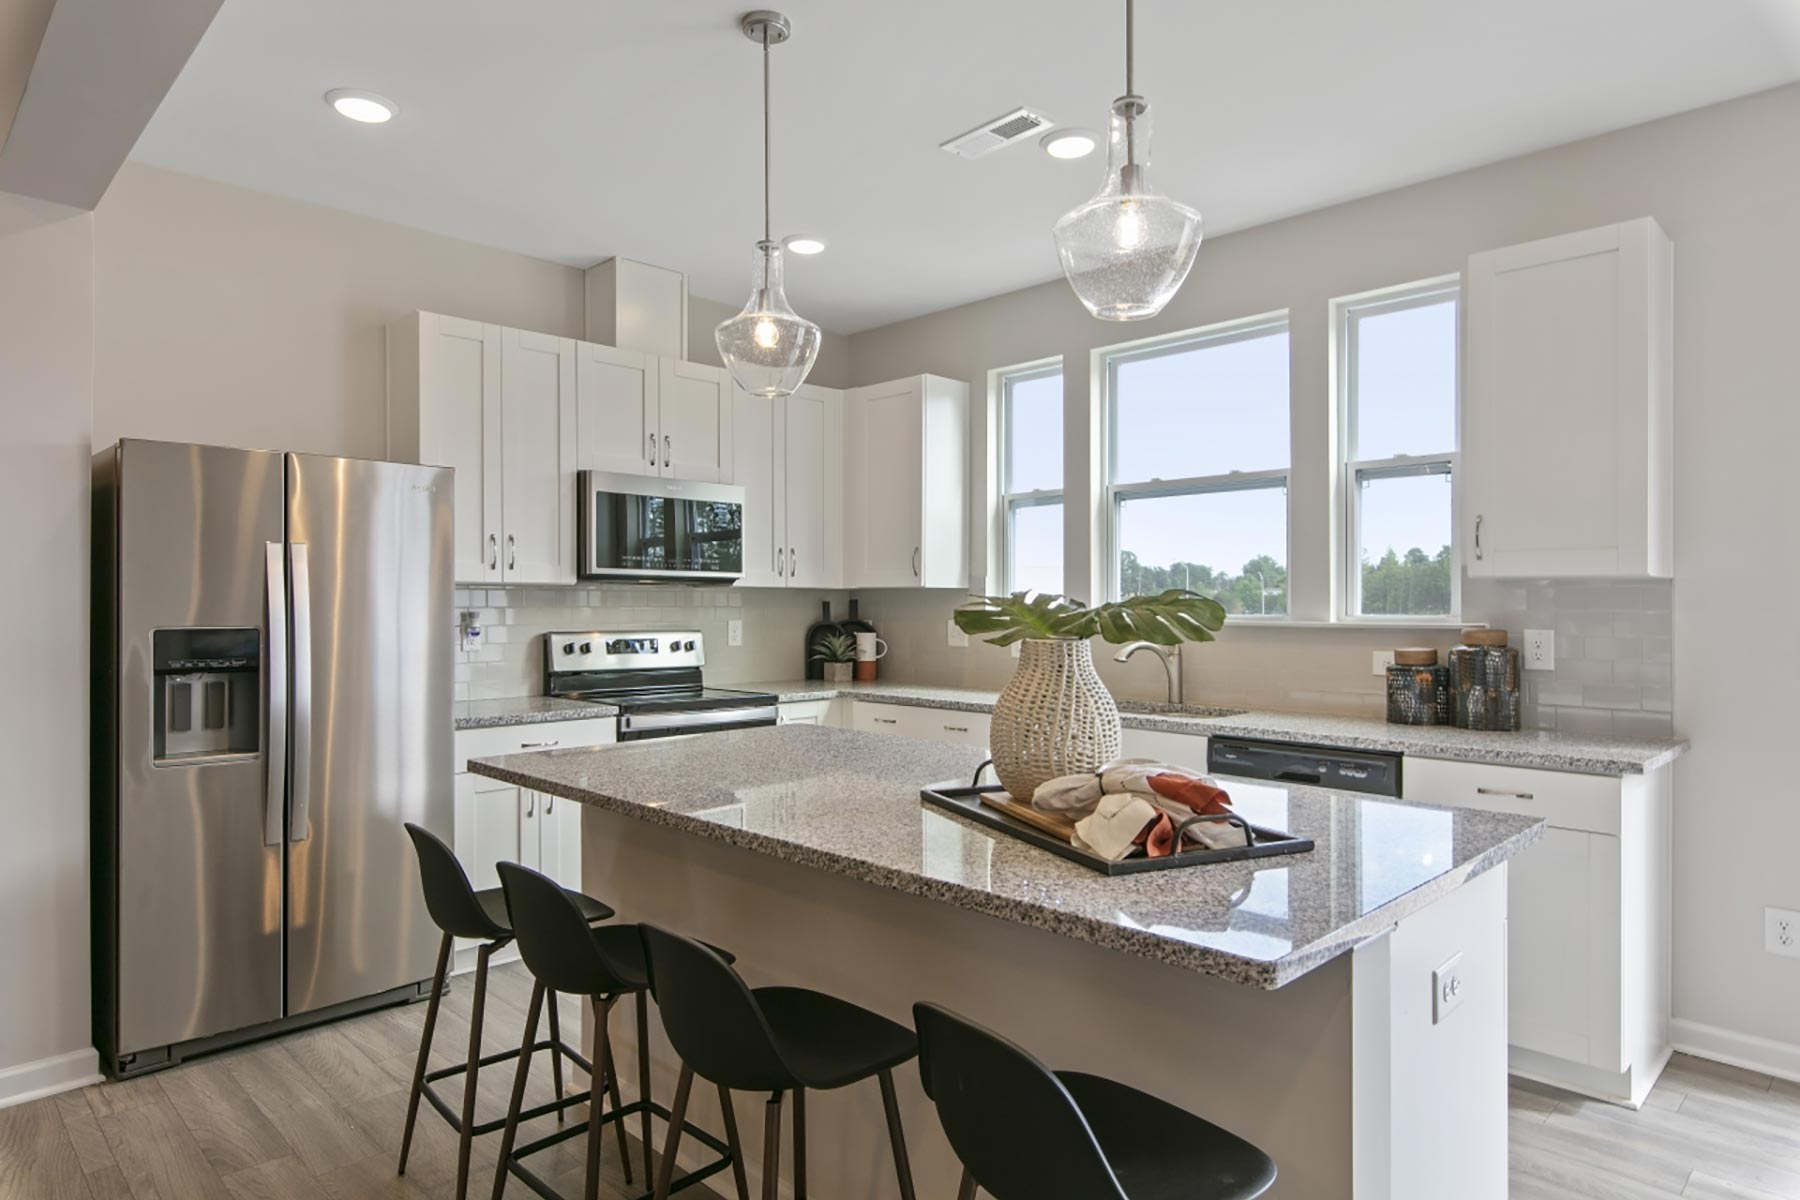 Claymore Plan Kitchen at Minglewood Townhomes in Garner North Carolina by Mattamy Homes